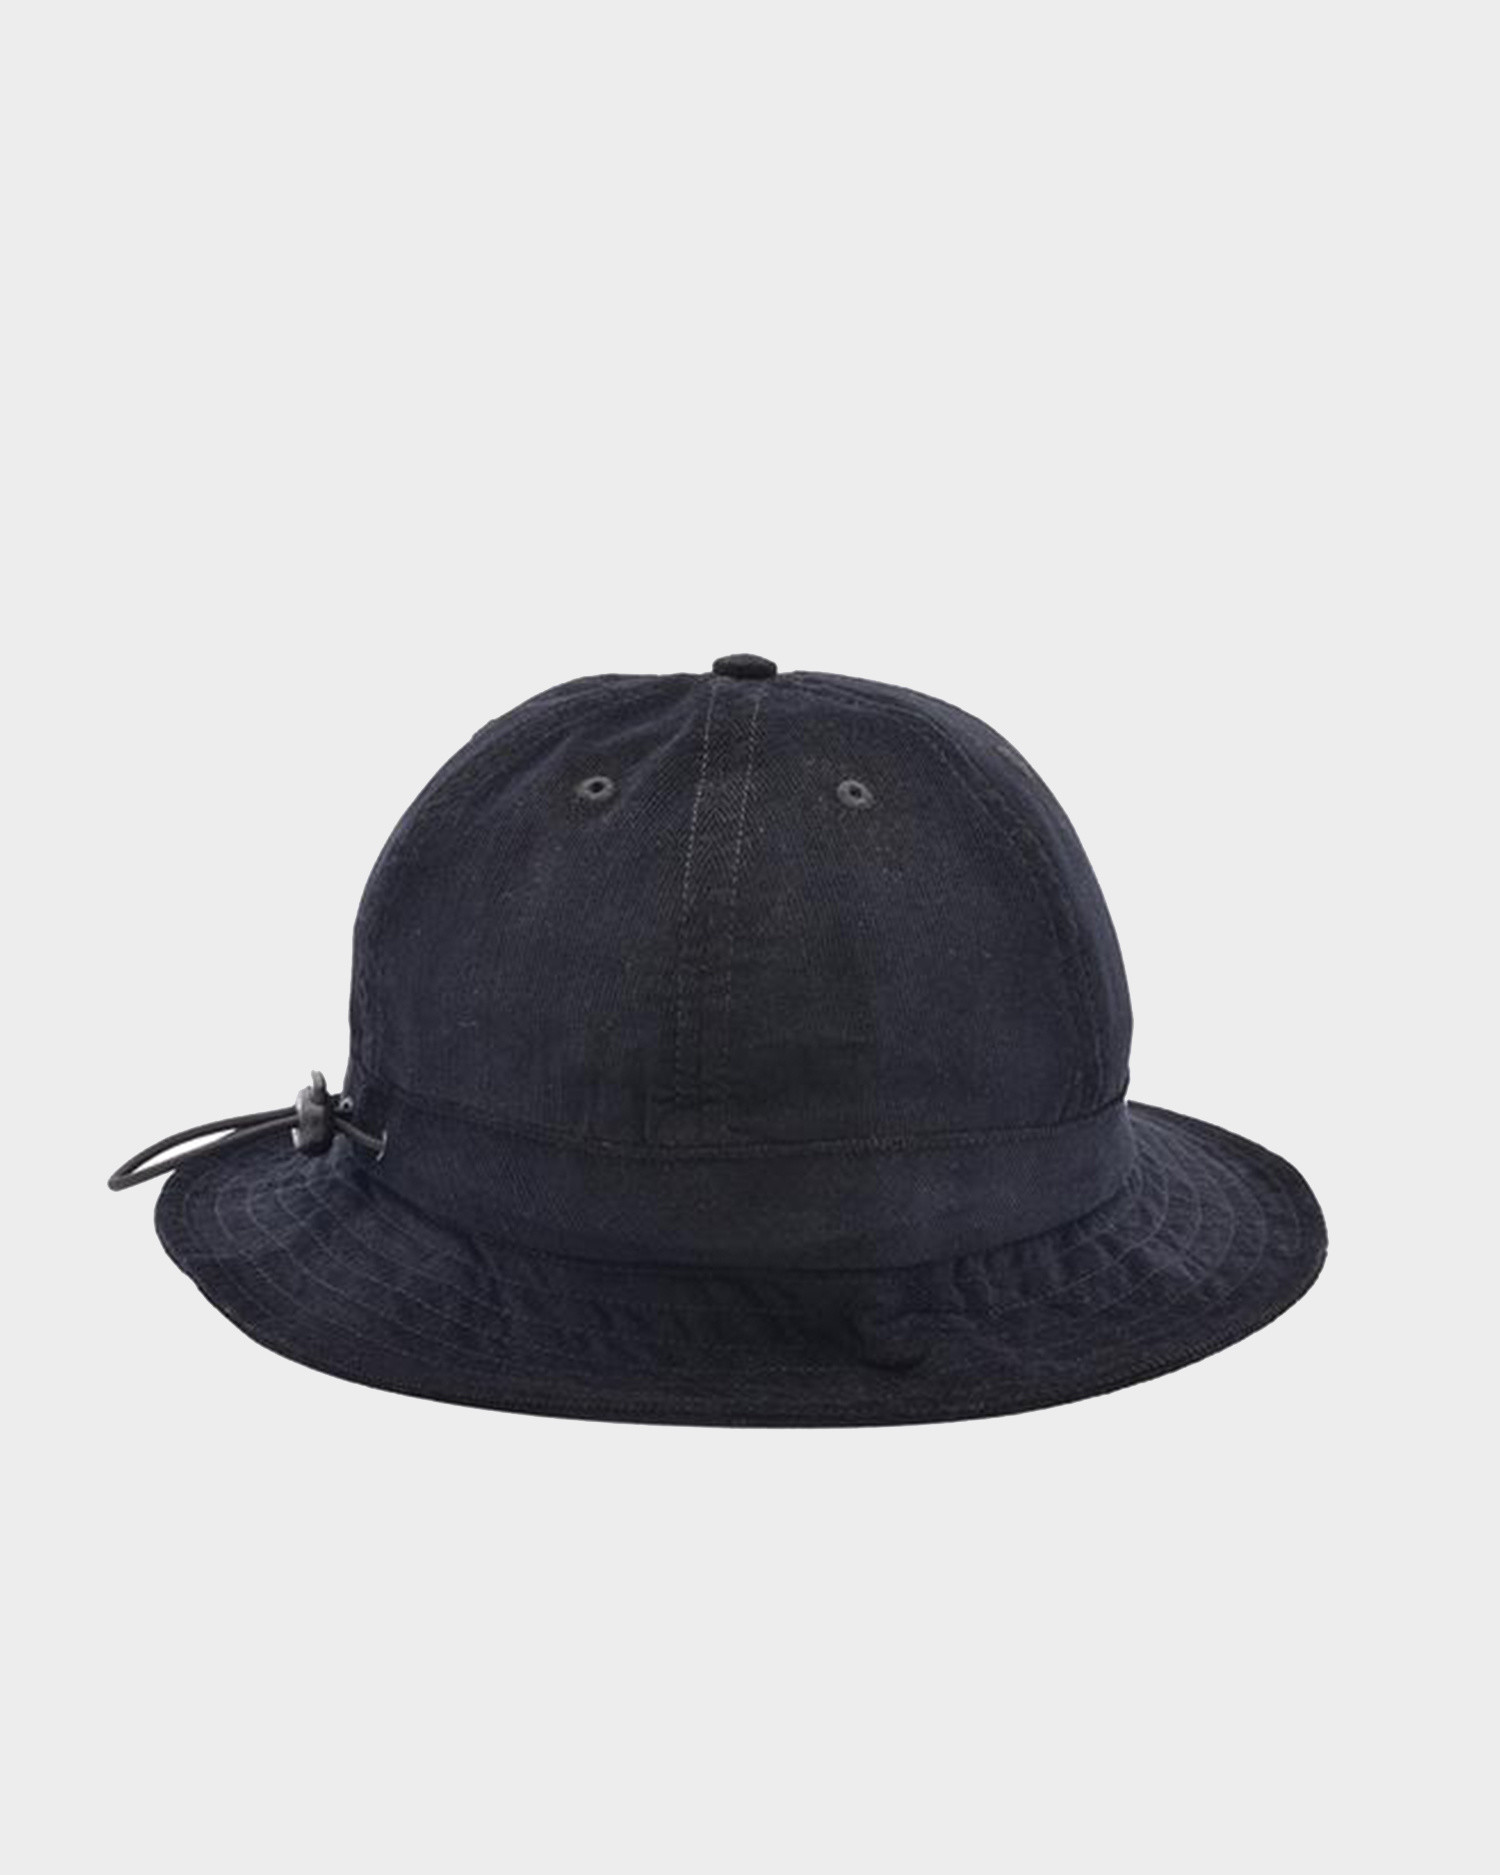 Pop Bell Hat  Black Minicord